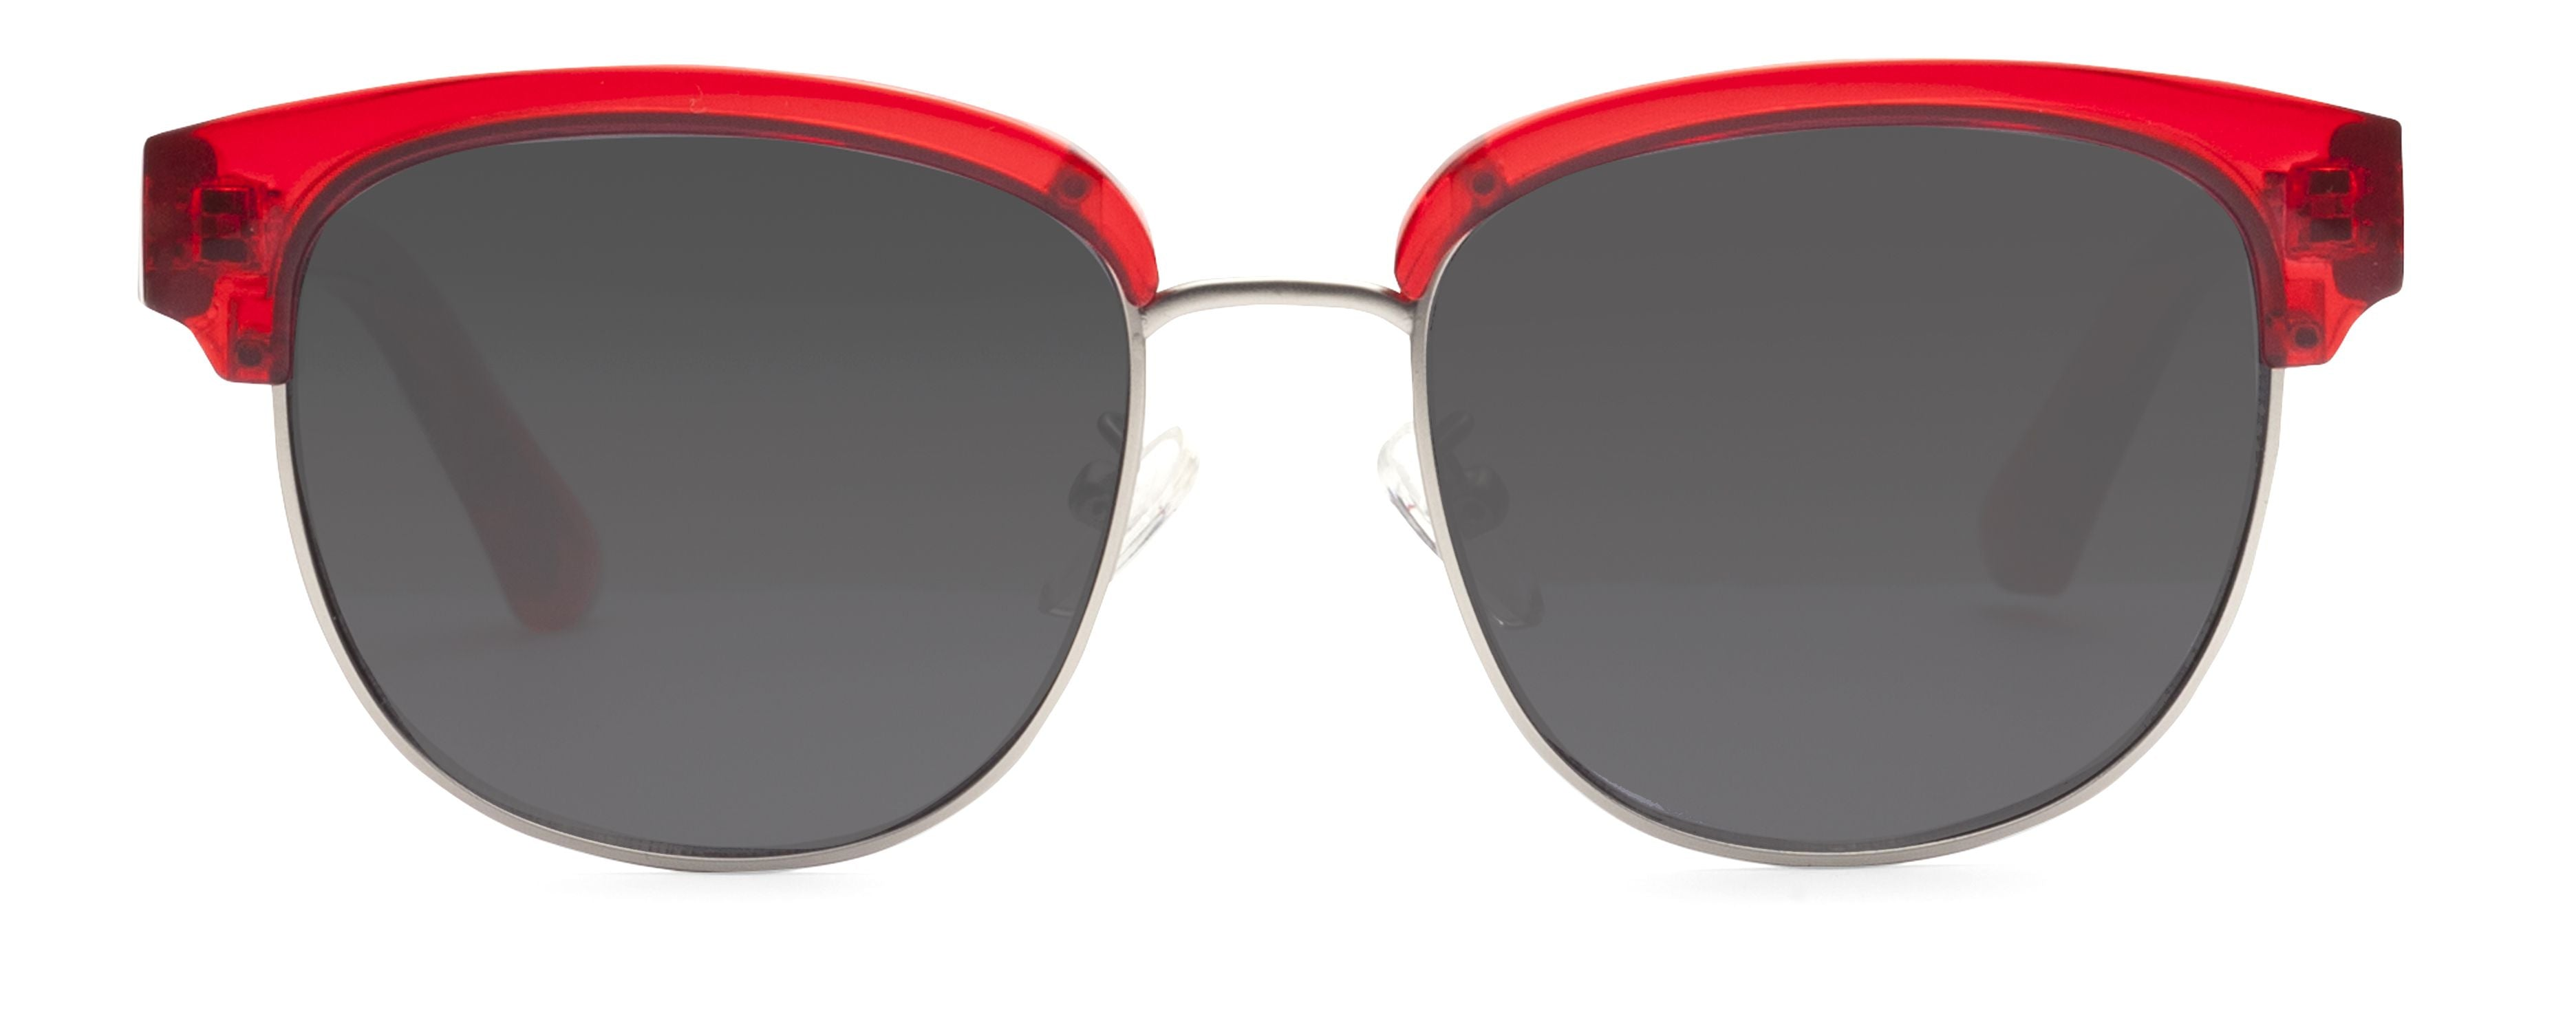 ZING Red JUNiA Kids Sunglasses